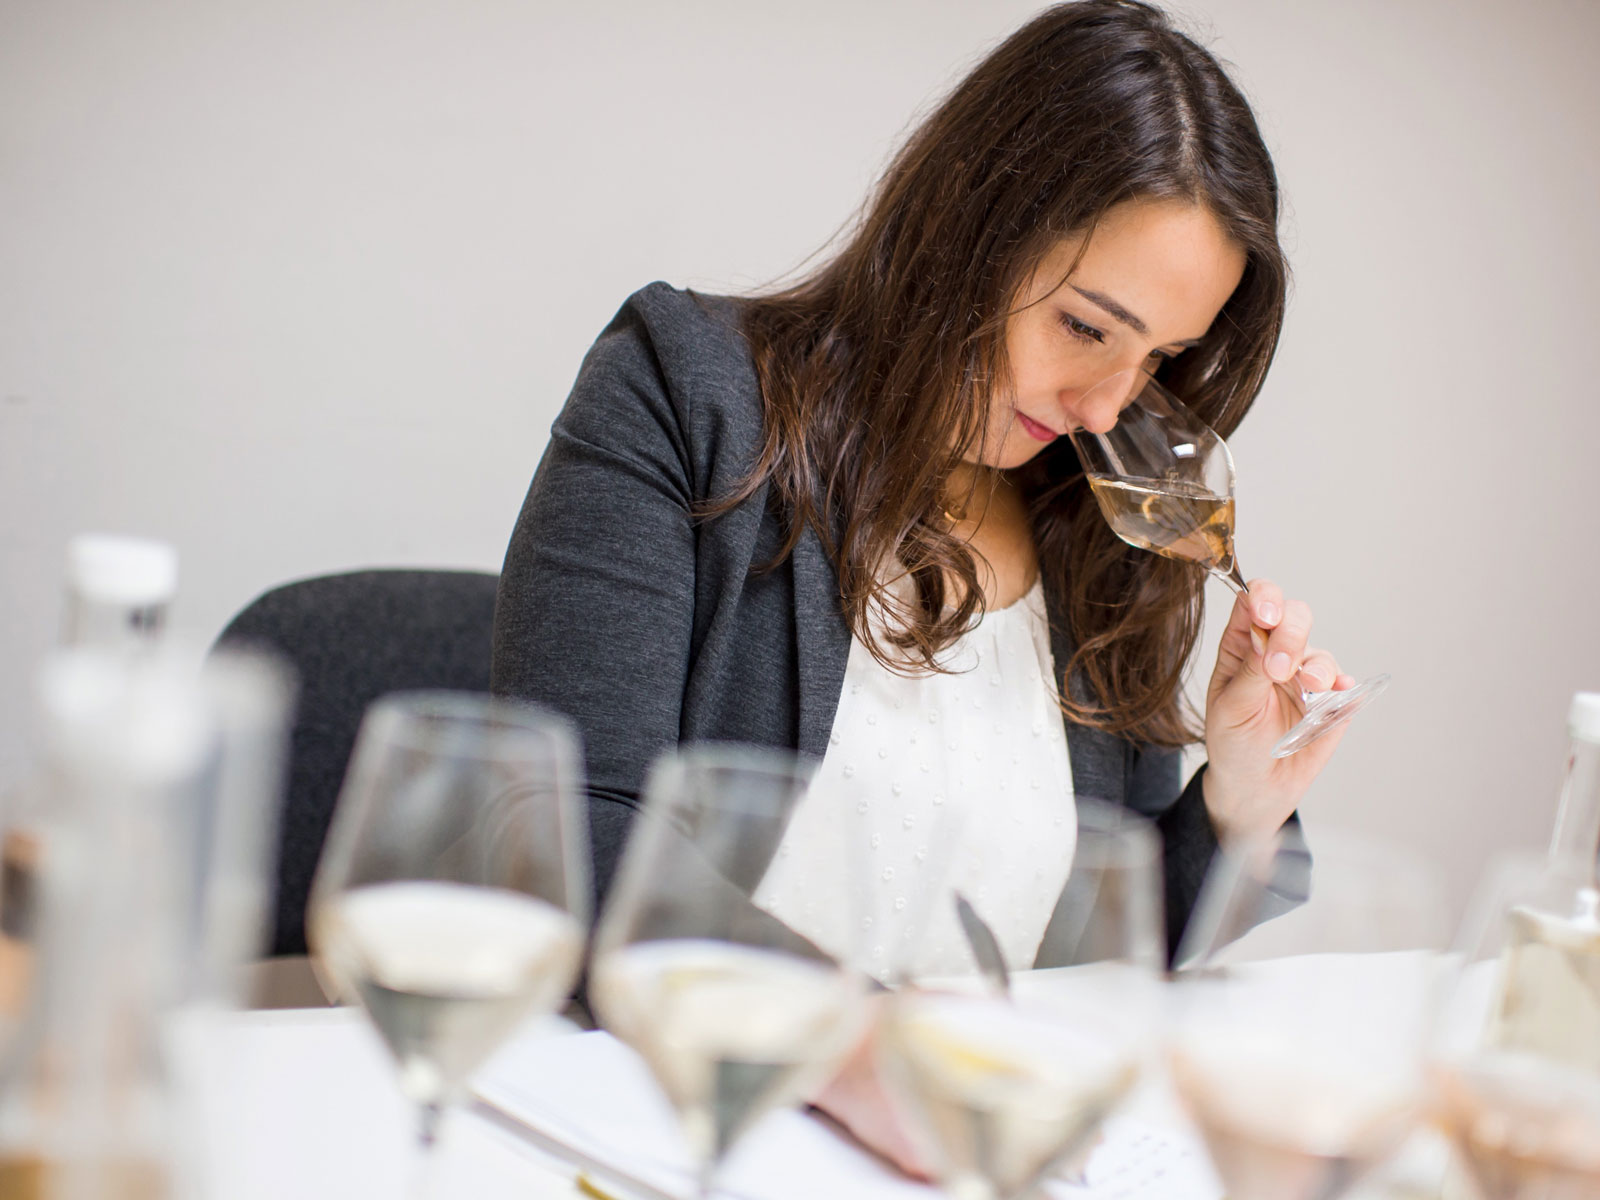 24 Hours in the Life of: Pauline Lhote, Chandon's Director of Winemaking